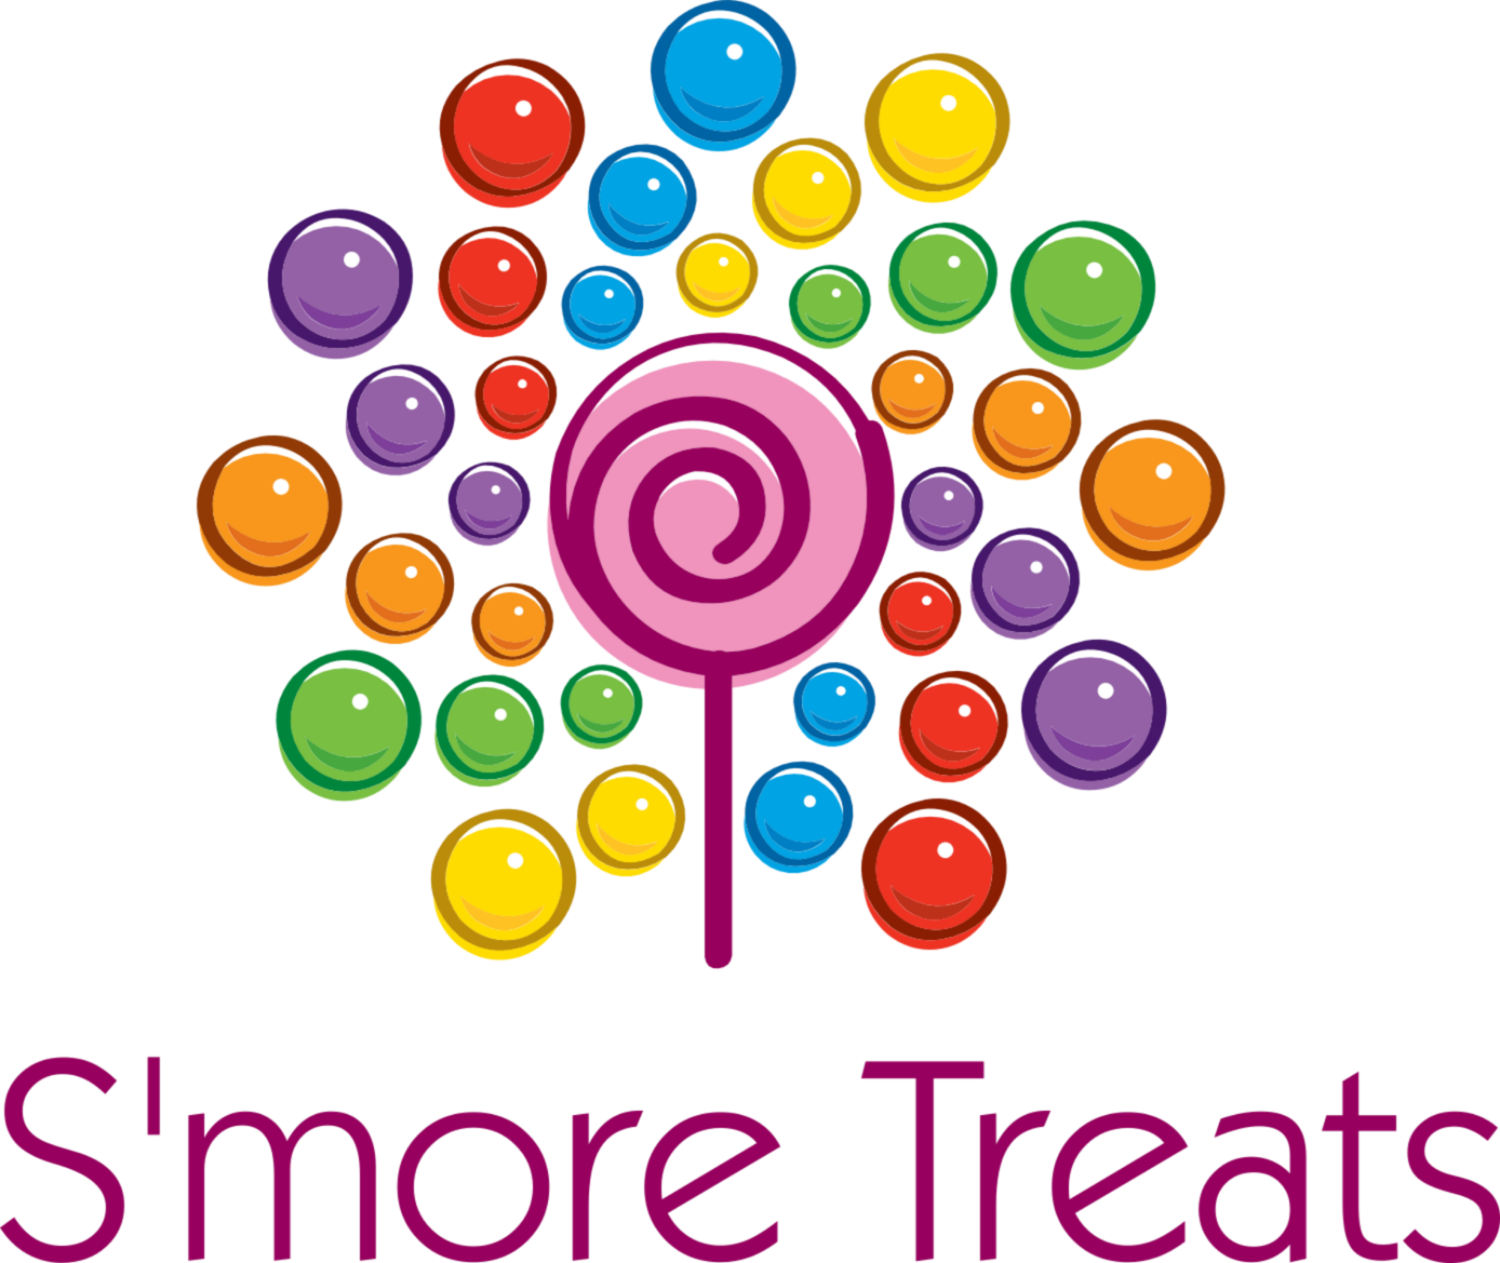 Welcome to Smore Treats - A Halal Confectionery Experience